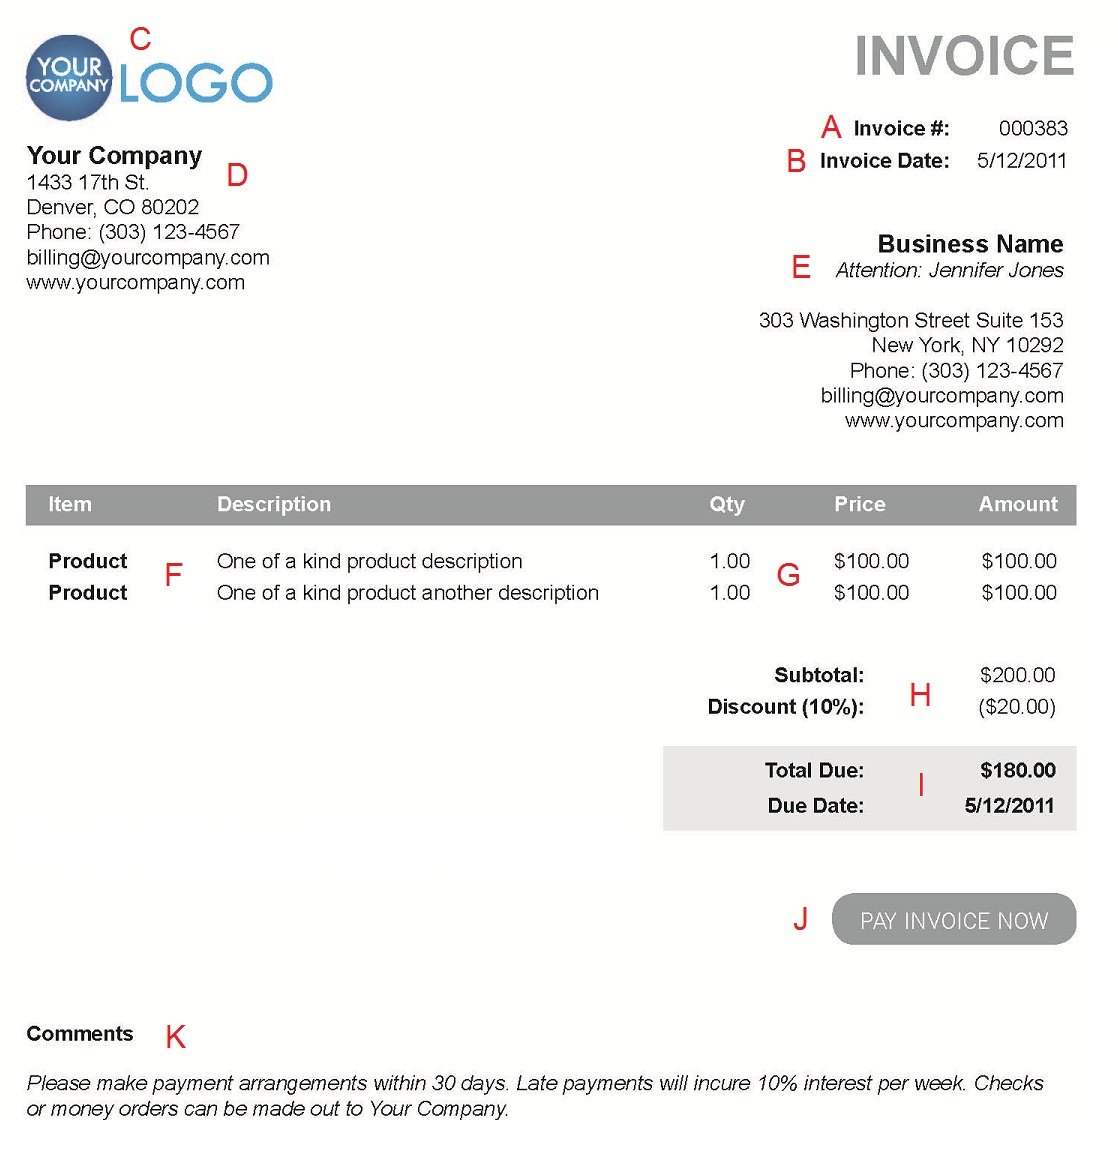 Reliefworkersus  Splendid The  Different Sections Of An Electronic Payment Invoice With Goodlooking A  With Beautiful Receipt Software Free Download Also Cornbread Receipt In Addition Rent Receipt Booklet And Receipts Scanner Reviews As Well As Receipt   Payment Account Format Additionally American Deposit Receipt From Paysimplecom With Reliefworkersus  Goodlooking The  Different Sections Of An Electronic Payment Invoice With Beautiful A  And Splendid Receipt Software Free Download Also Cornbread Receipt In Addition Rent Receipt Booklet From Paysimplecom